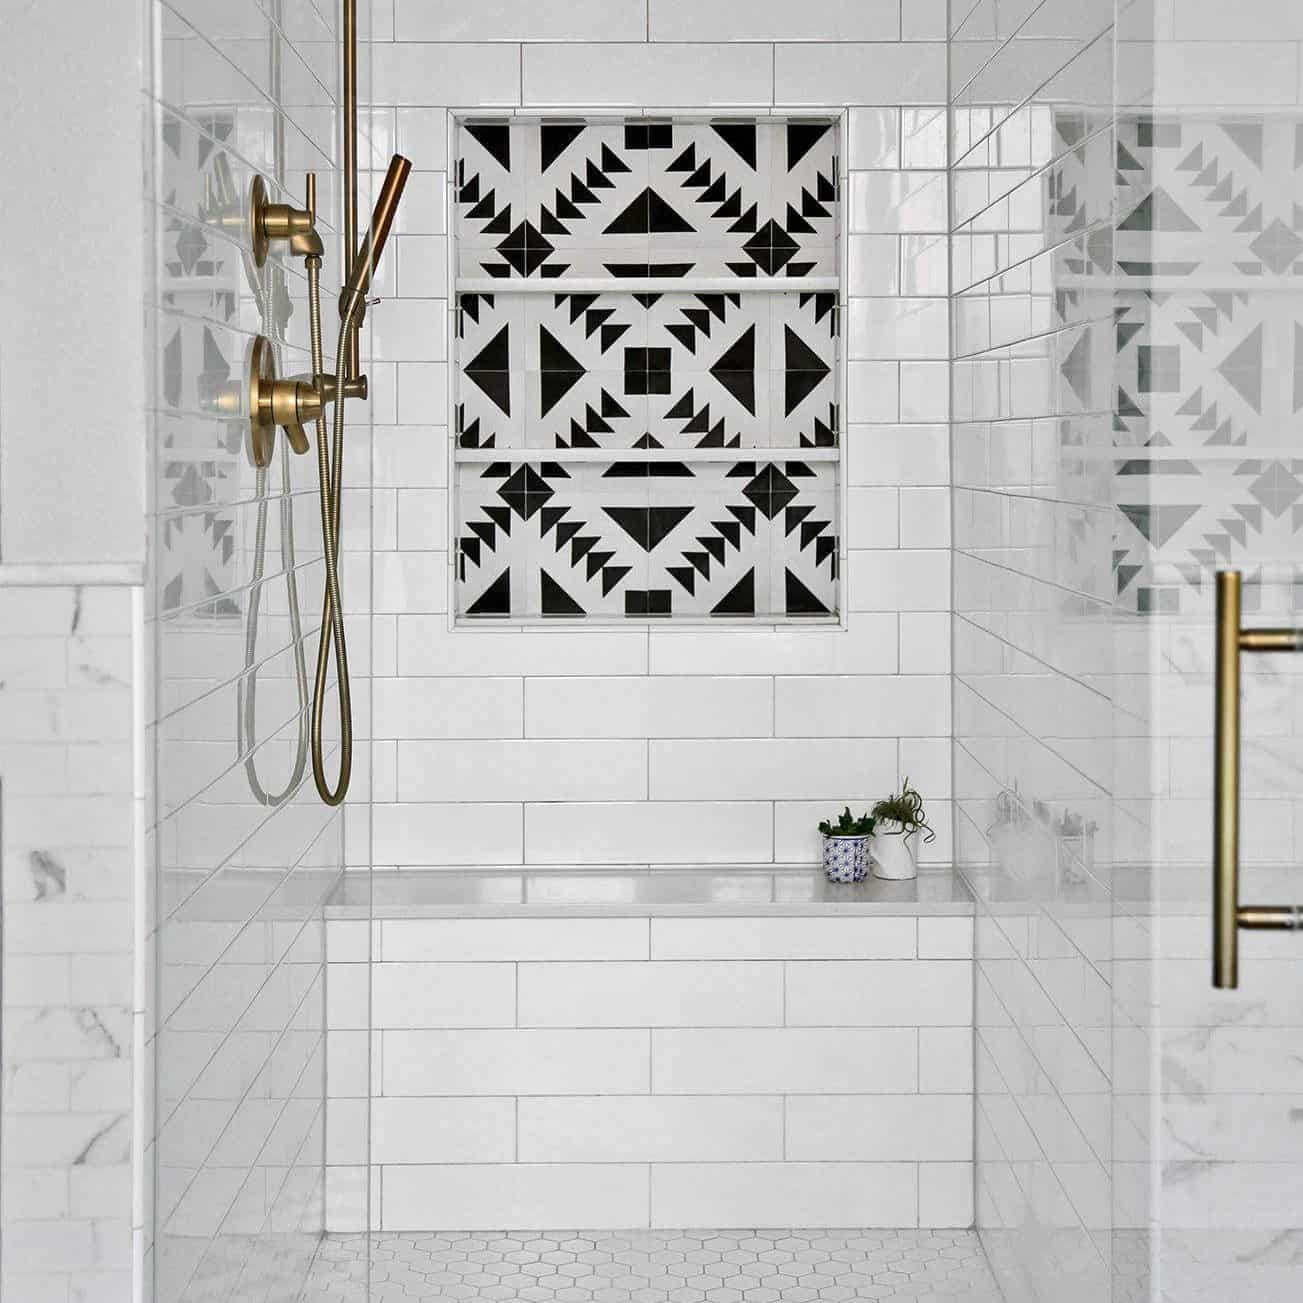 Subway Tiles with a Black and White Tile